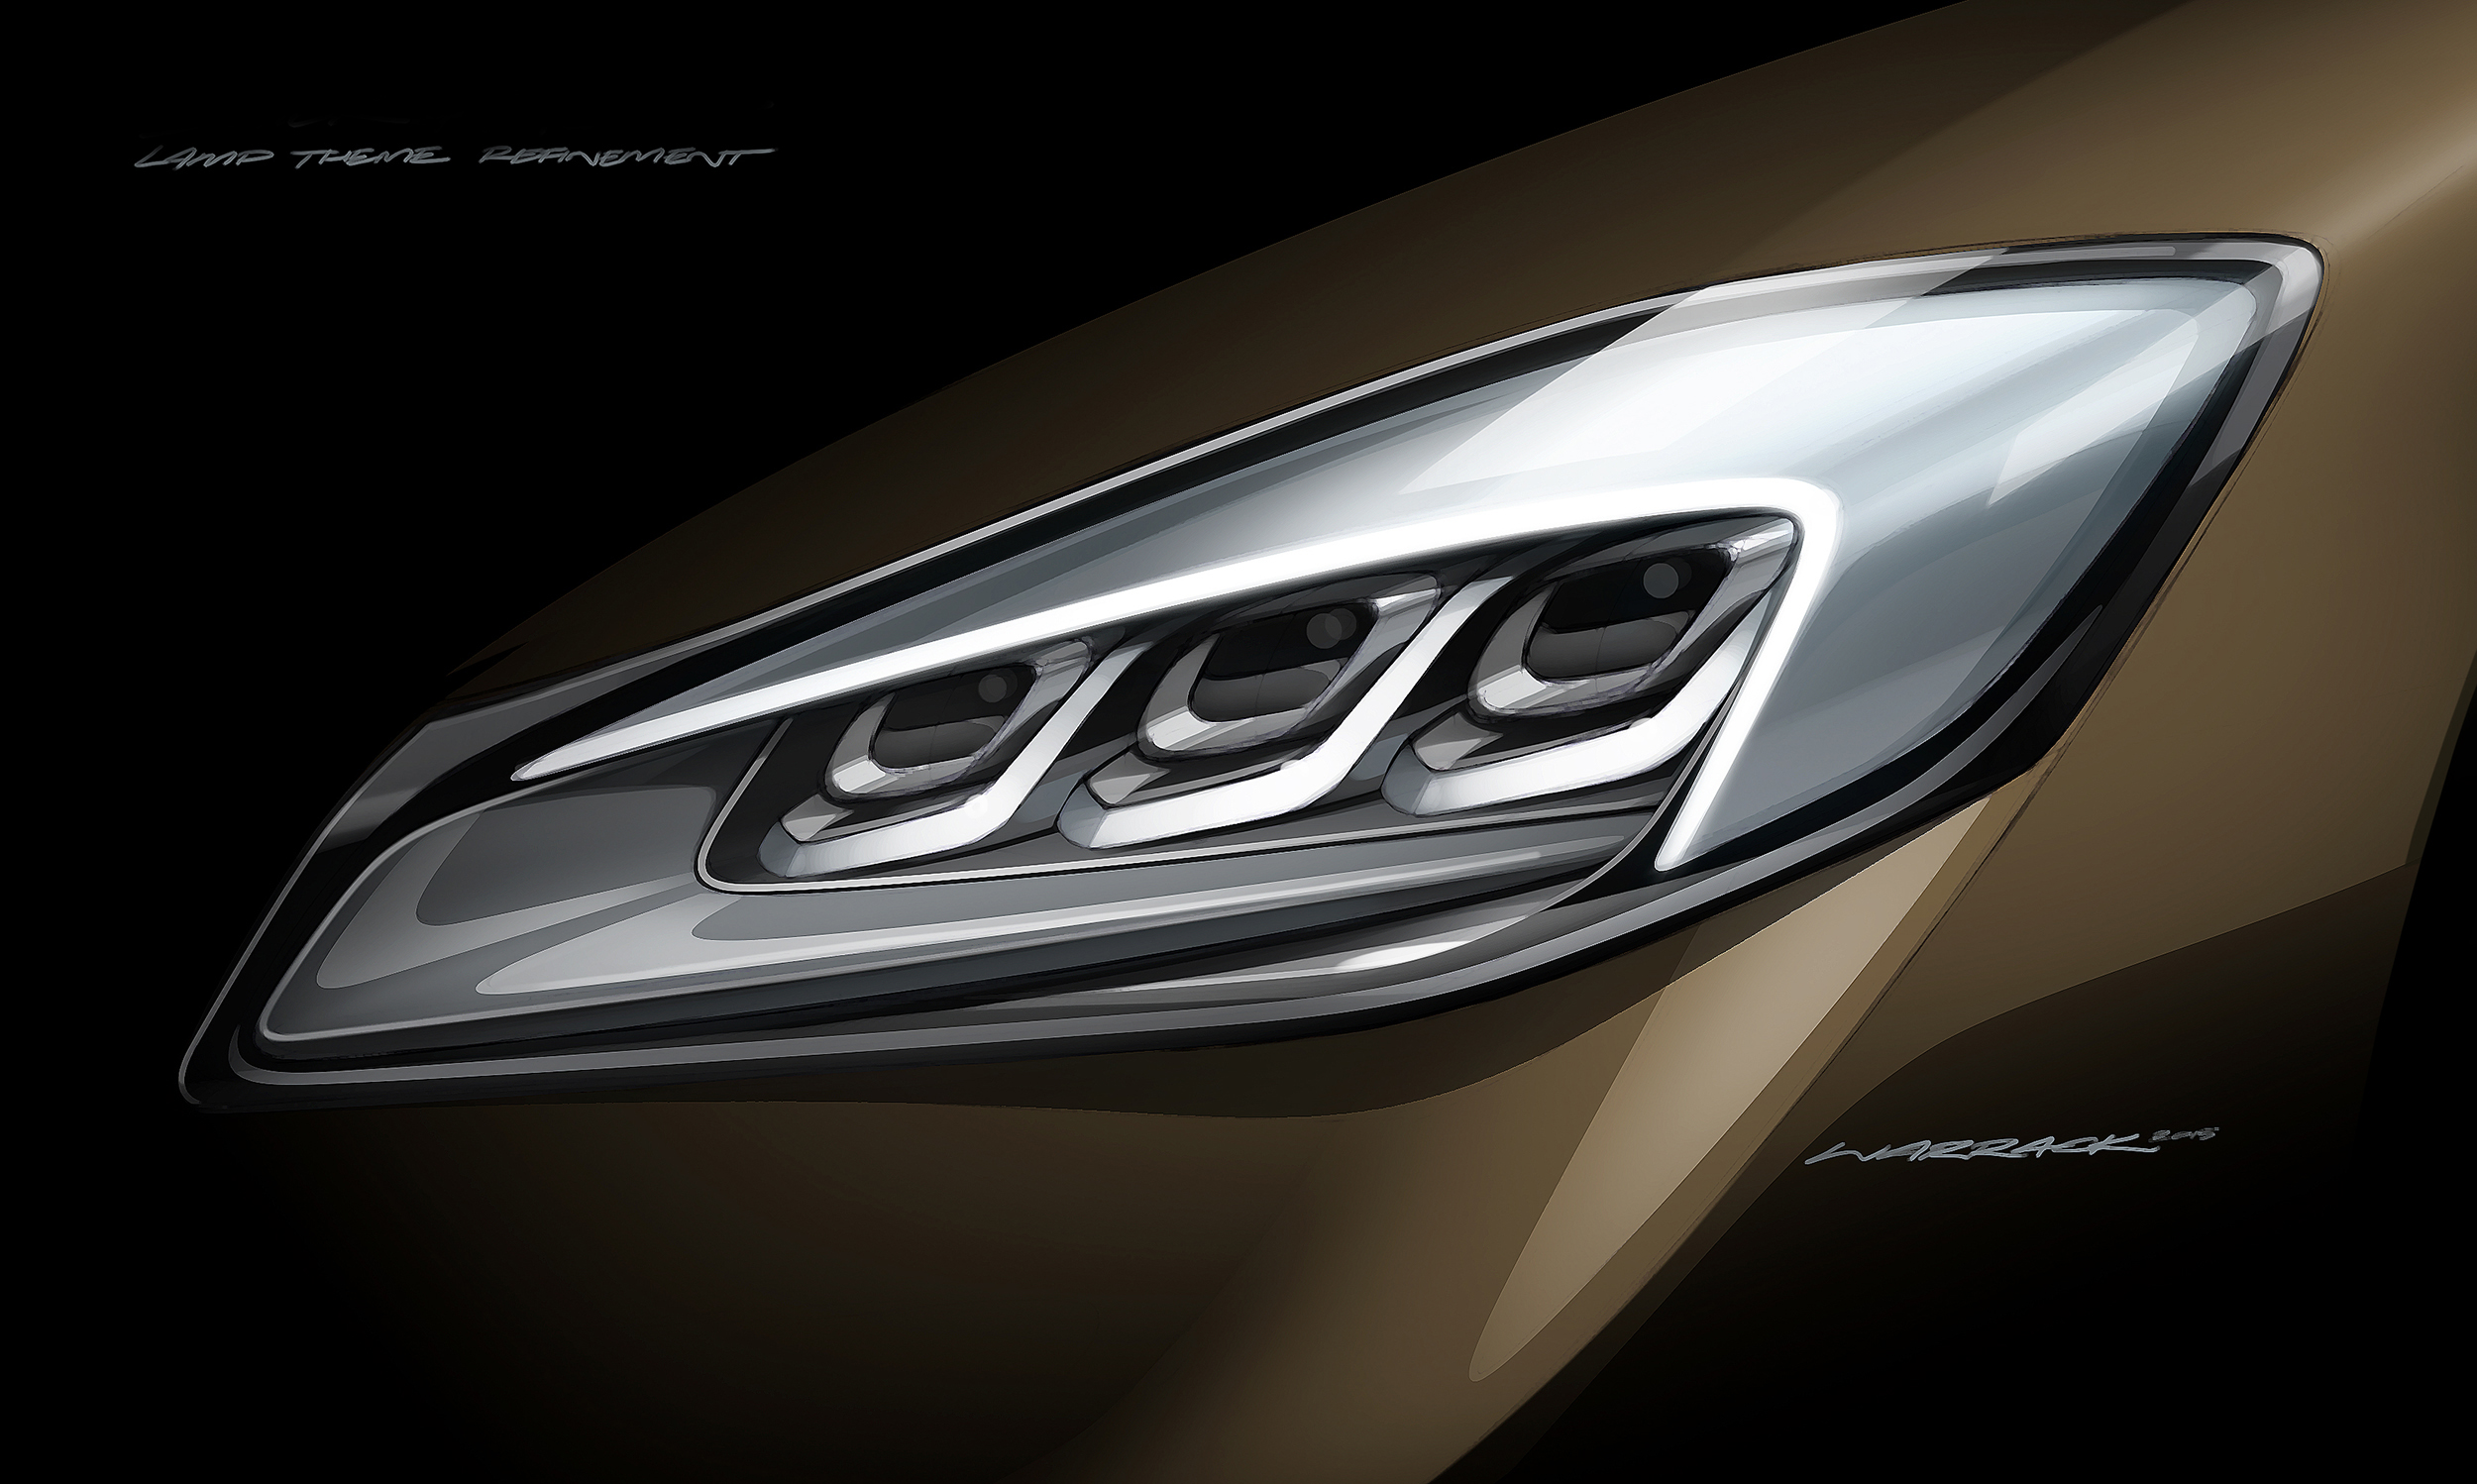 Avenir S Advanced Lighting Illuminates Future Buick Design